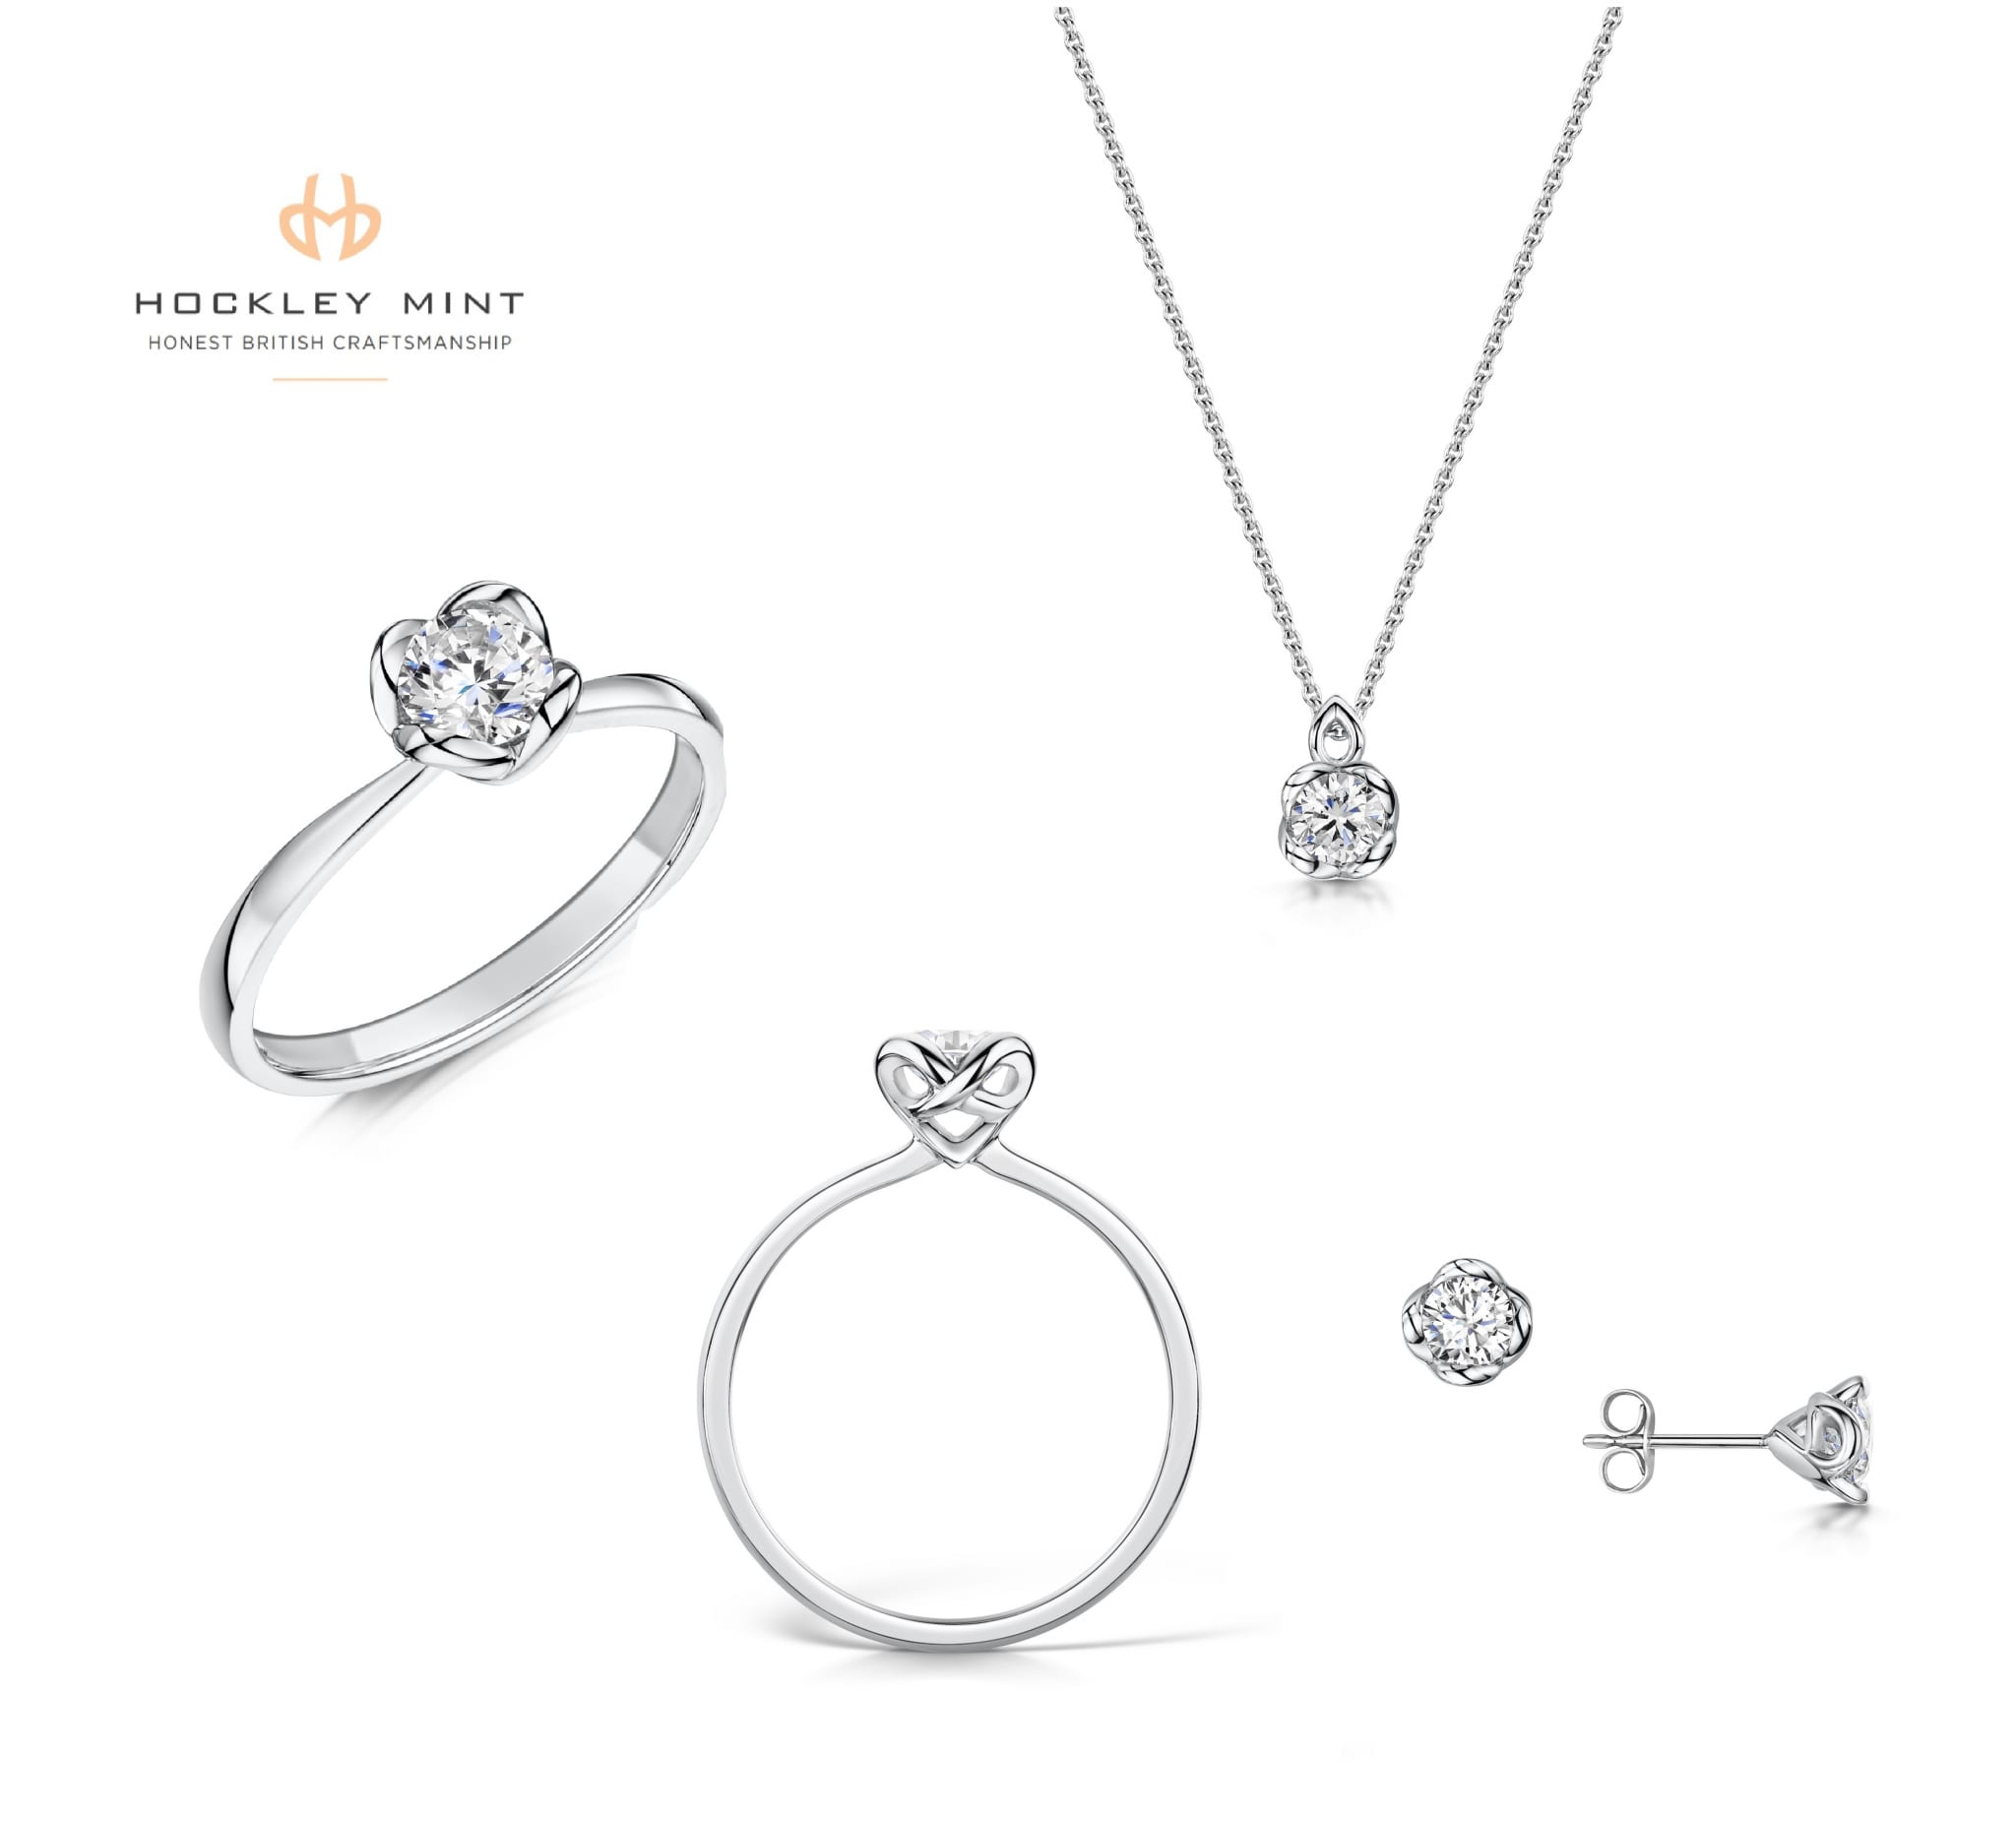 COLLECTIONS OF THE YEAR 2019: Bridal Jewellery